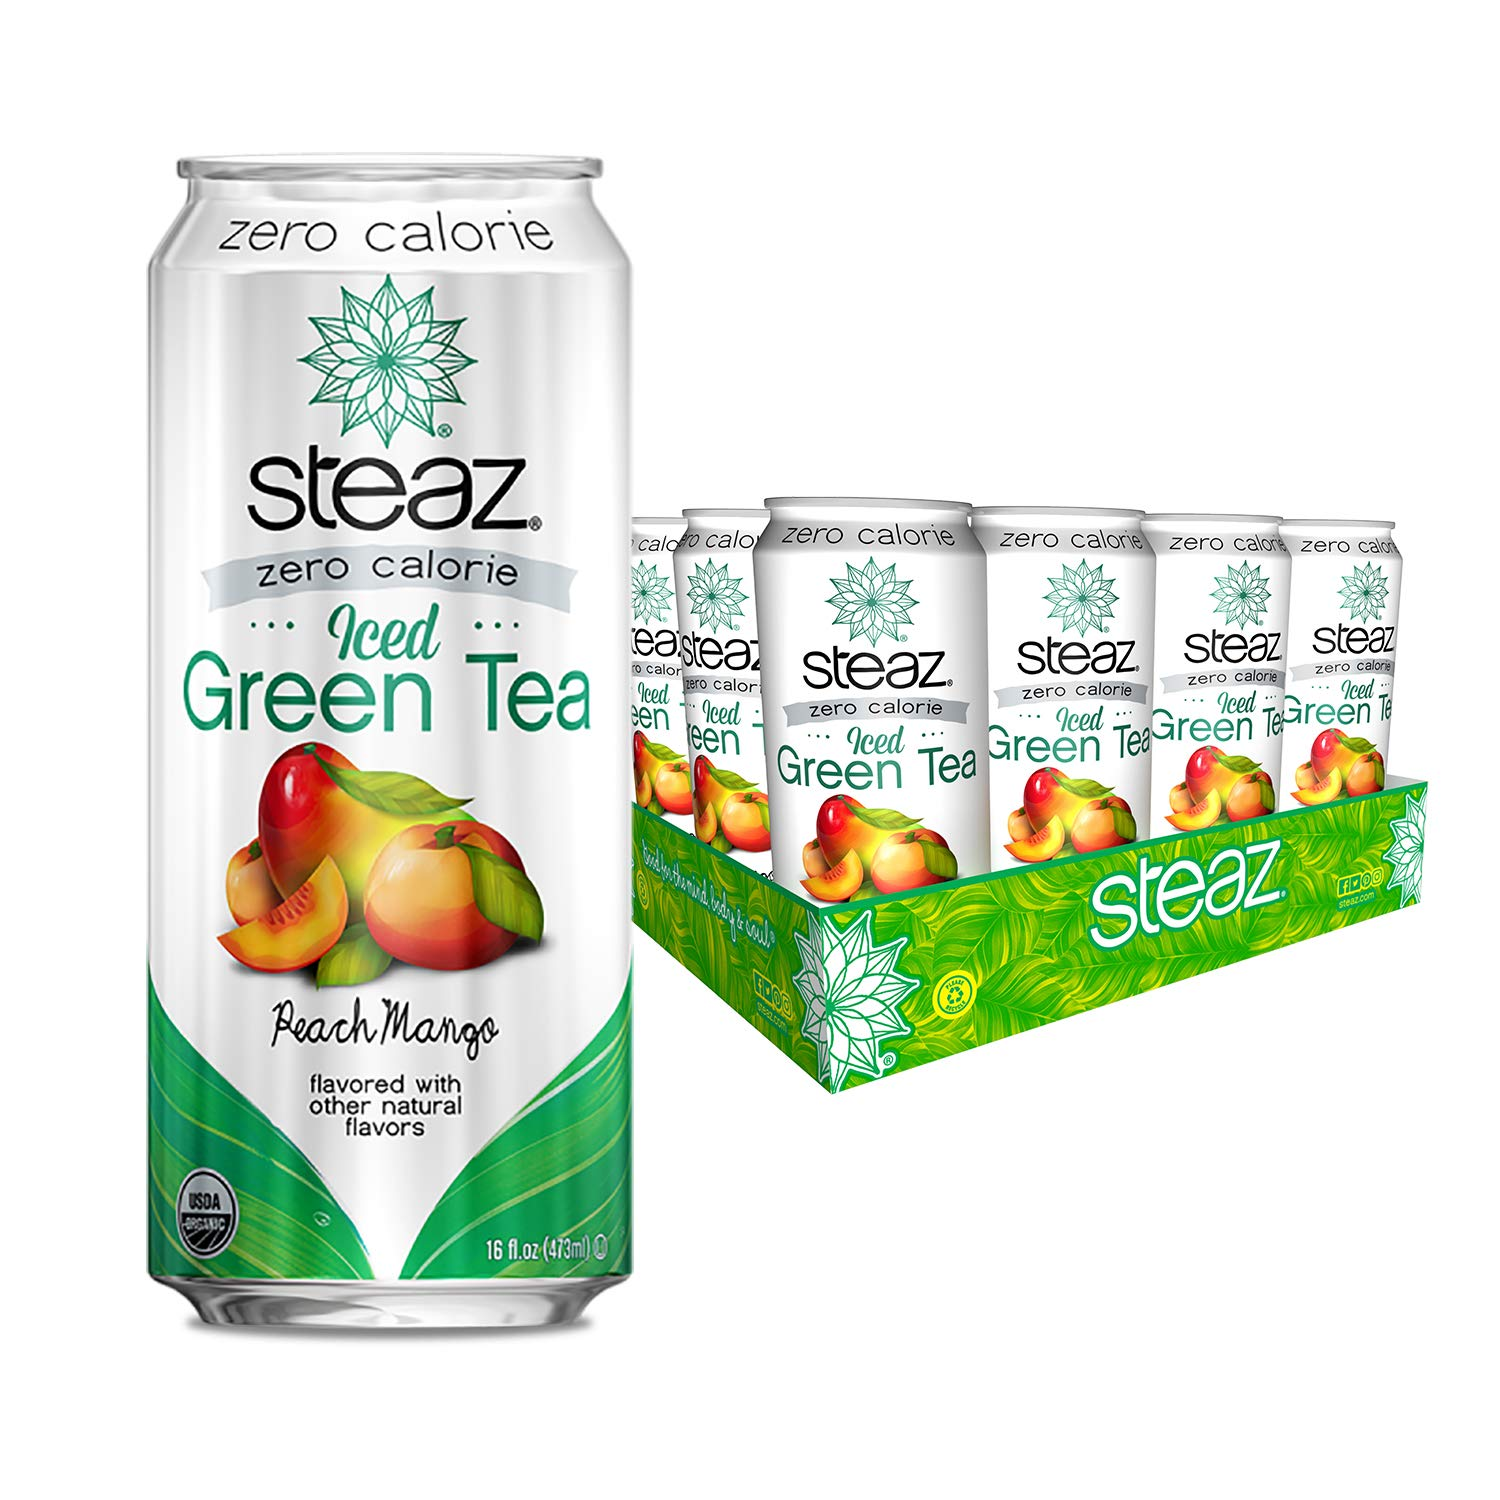 Steaz Zero Calorie Iced Green Tea, 16 OZ (Peach Mango)